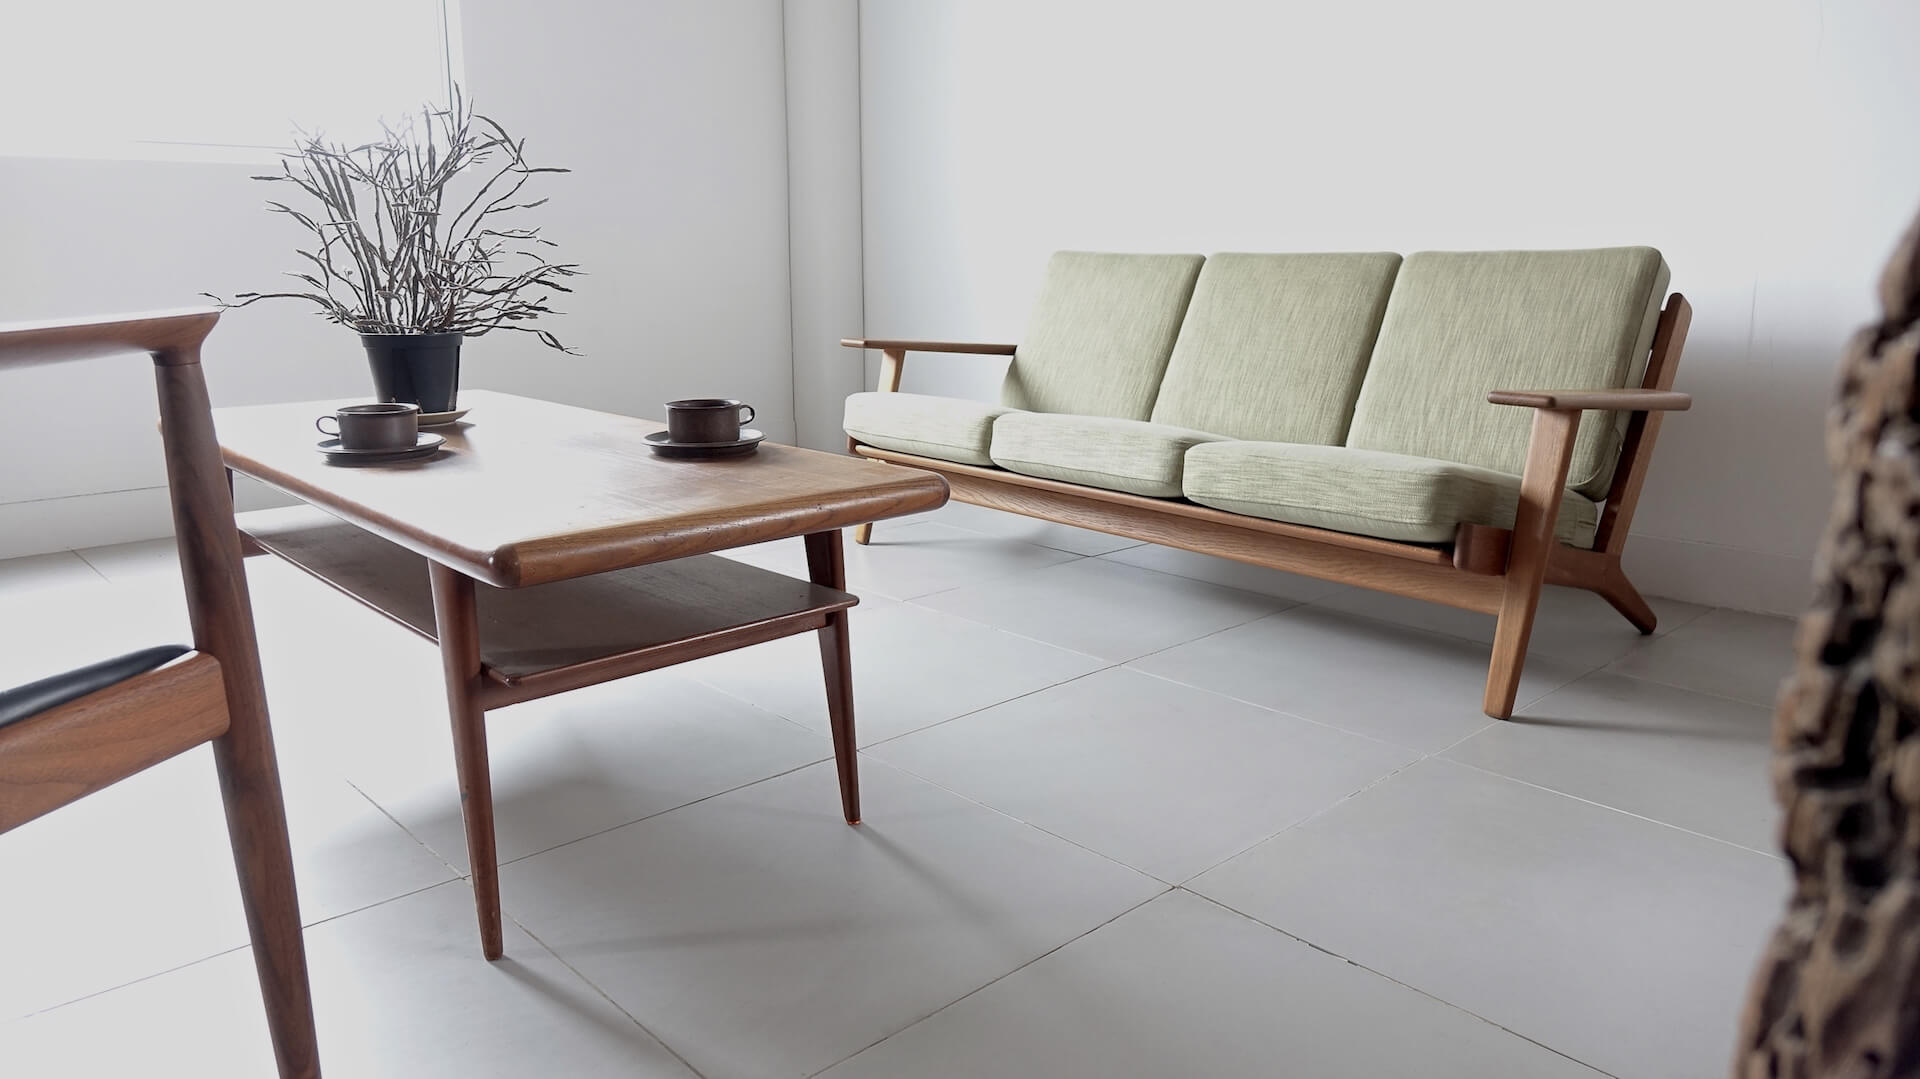 GE290 3-seater Sofa by Hans J. Wegner for GETAMA